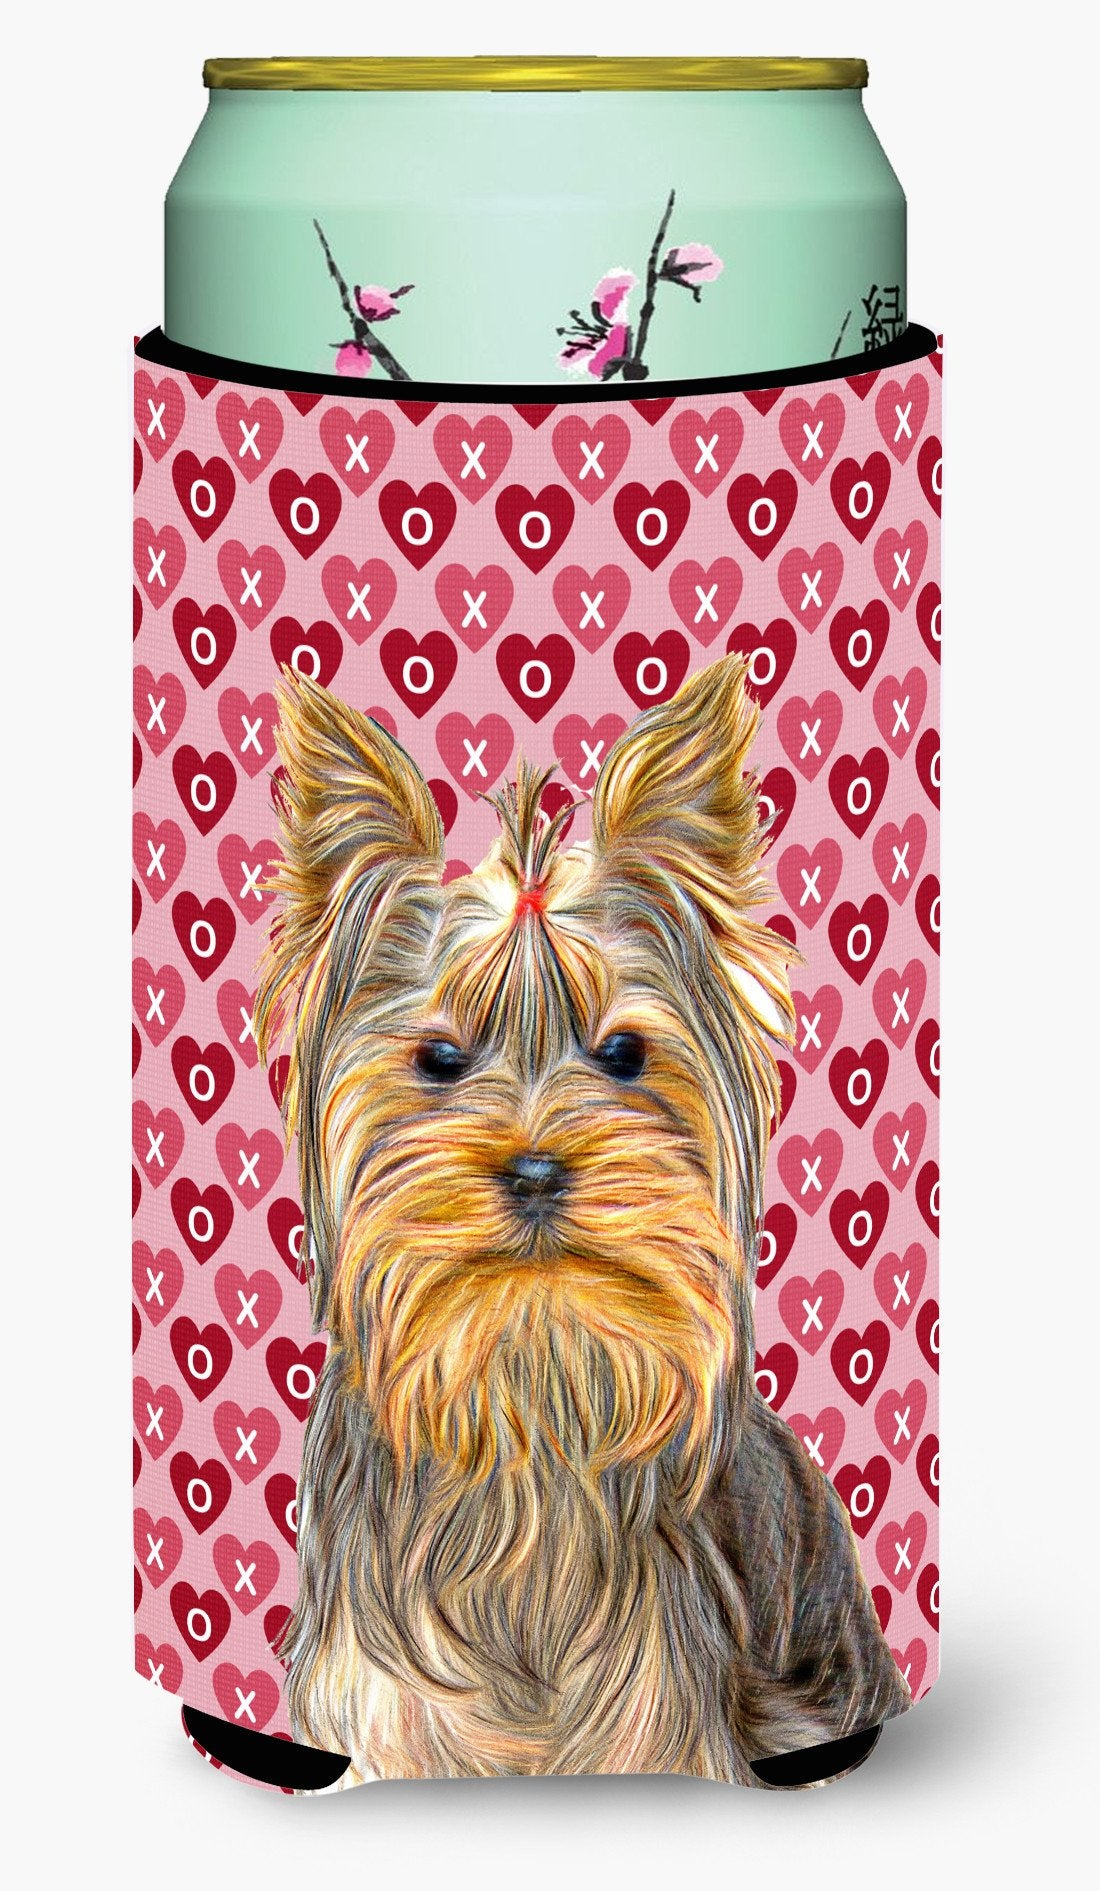 Hearts Love and Valentine's Day Yorkie / Yorkshire Terrier Tall Boy Beverage Insulator Hugger KJ1191TBC by Caroline's Treasures